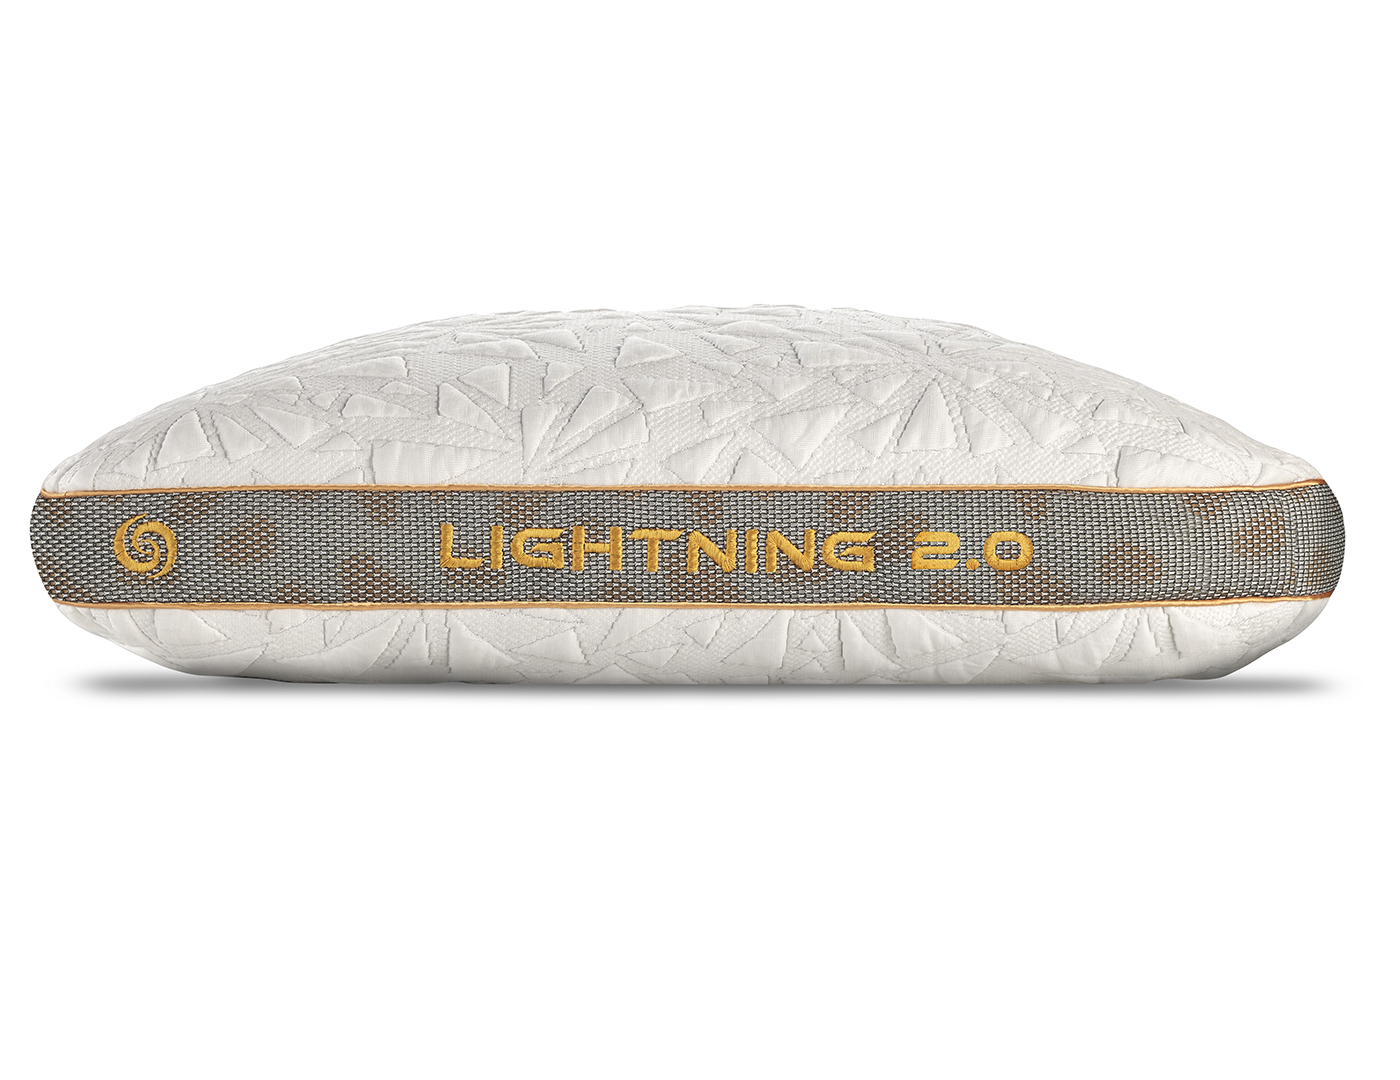 bedgear Lightning 2.0 Queen Pillow